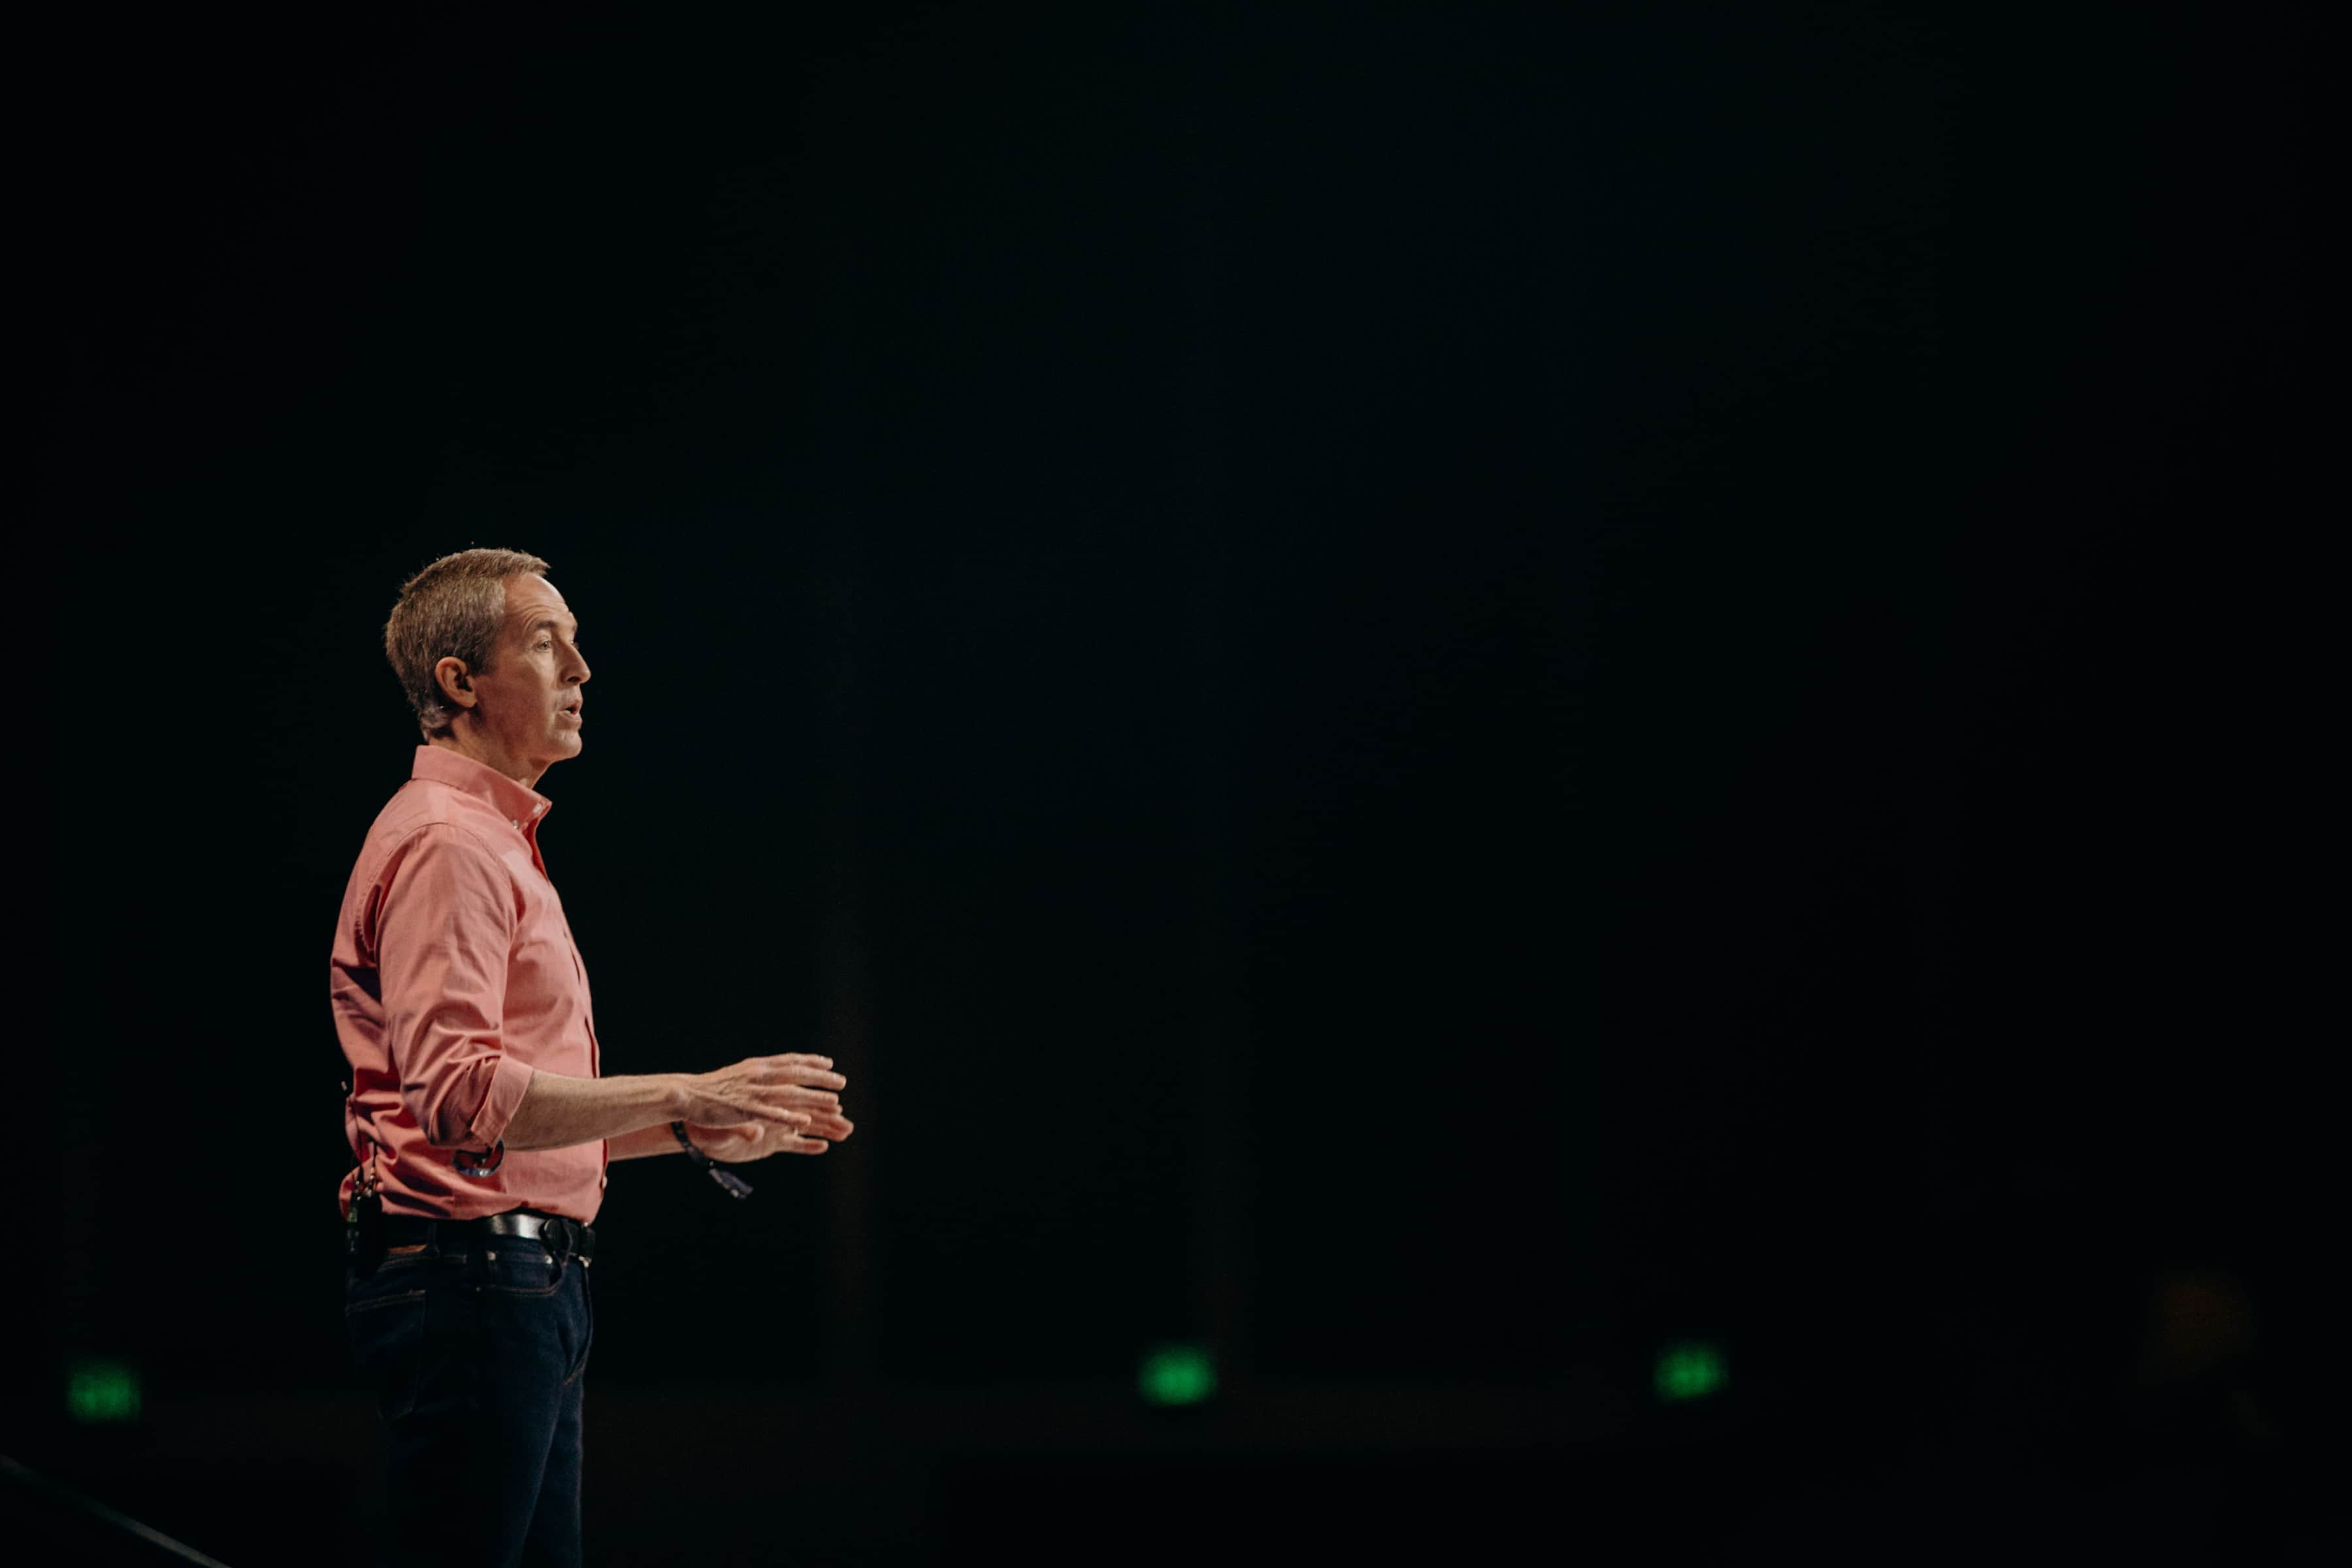 Andy Stanley speaking at Catalyst West 2018